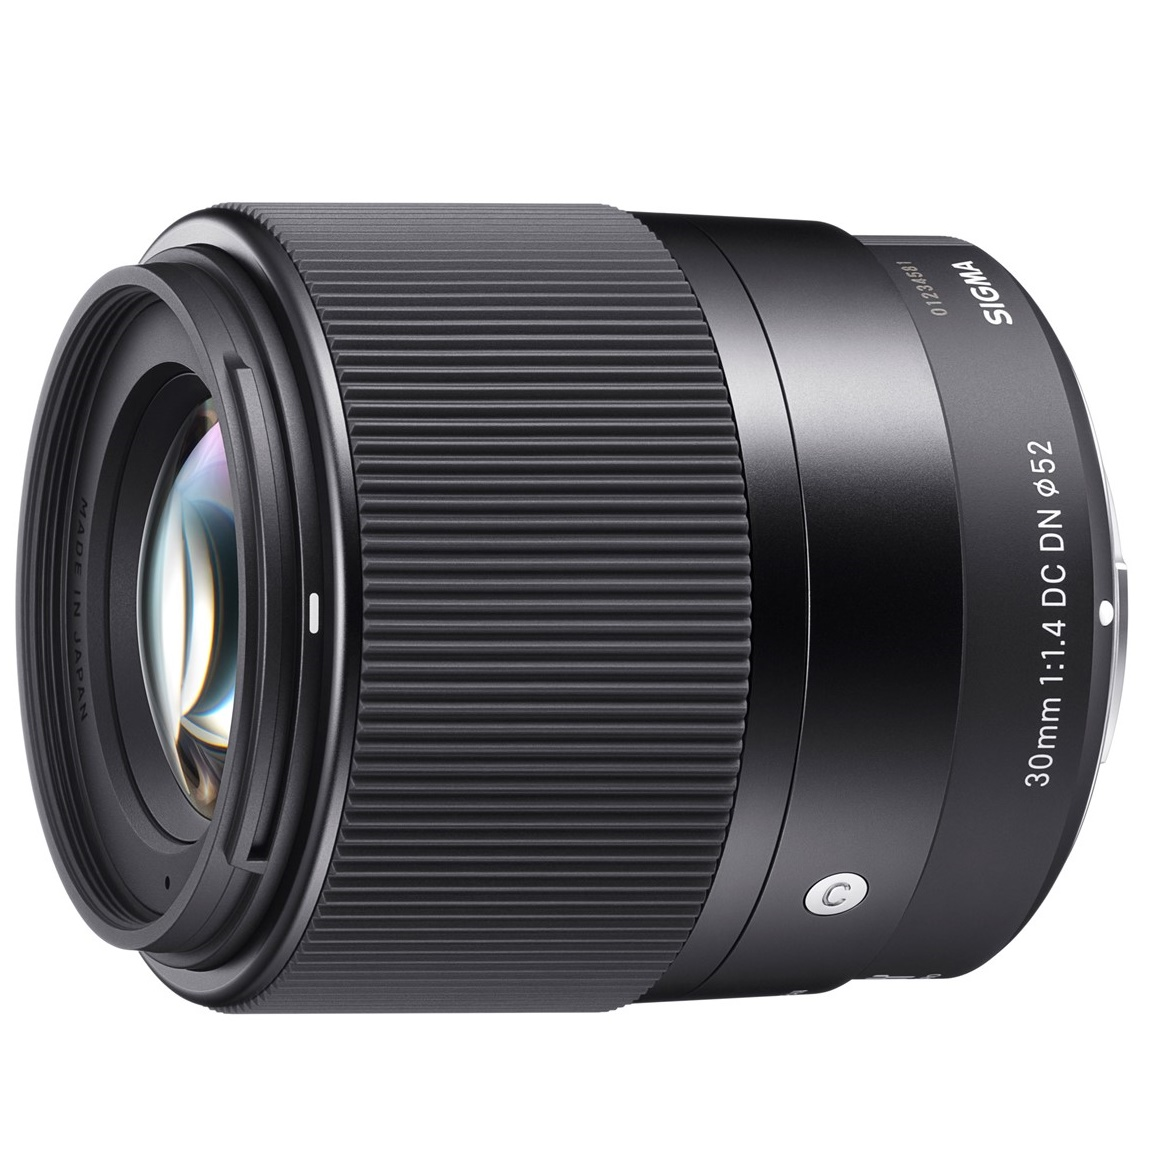 Sigma 30mm f1.4 DC DN Lens - Micro Four Thirds Fit